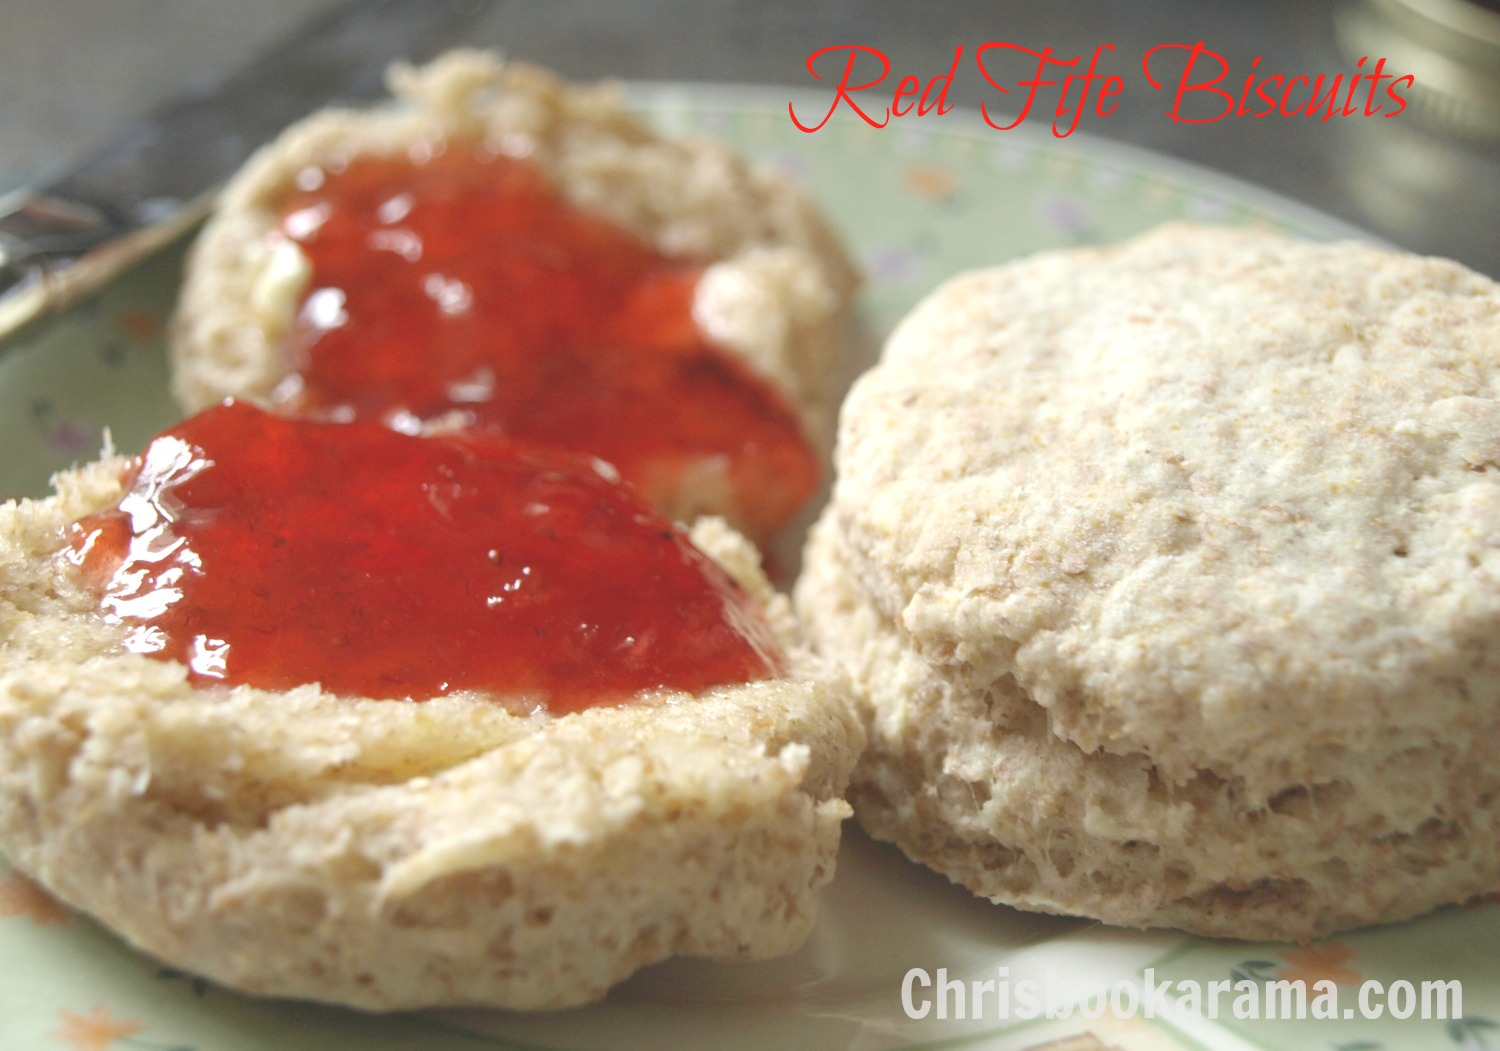 Red Fife Biscuit Recipe Chrisbookarama.com